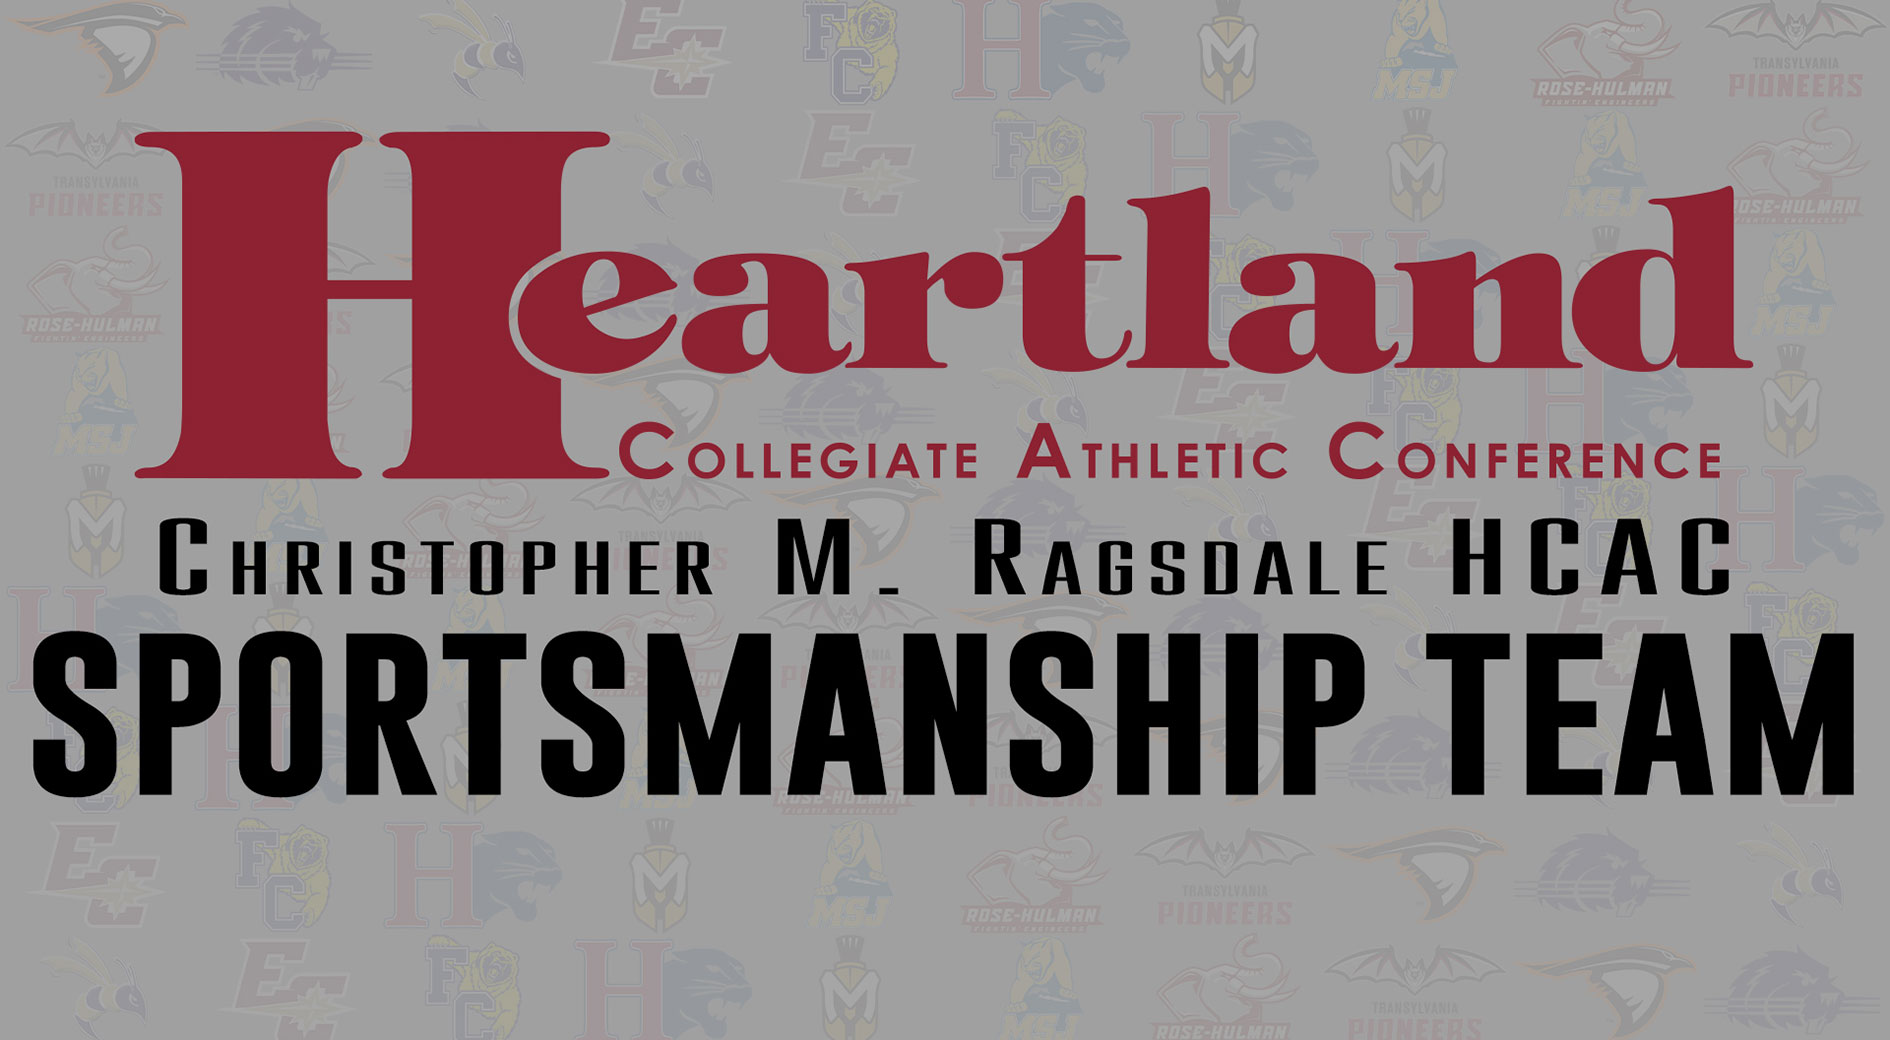 HCAC Fall 2019 Sportsmanship Team graphic